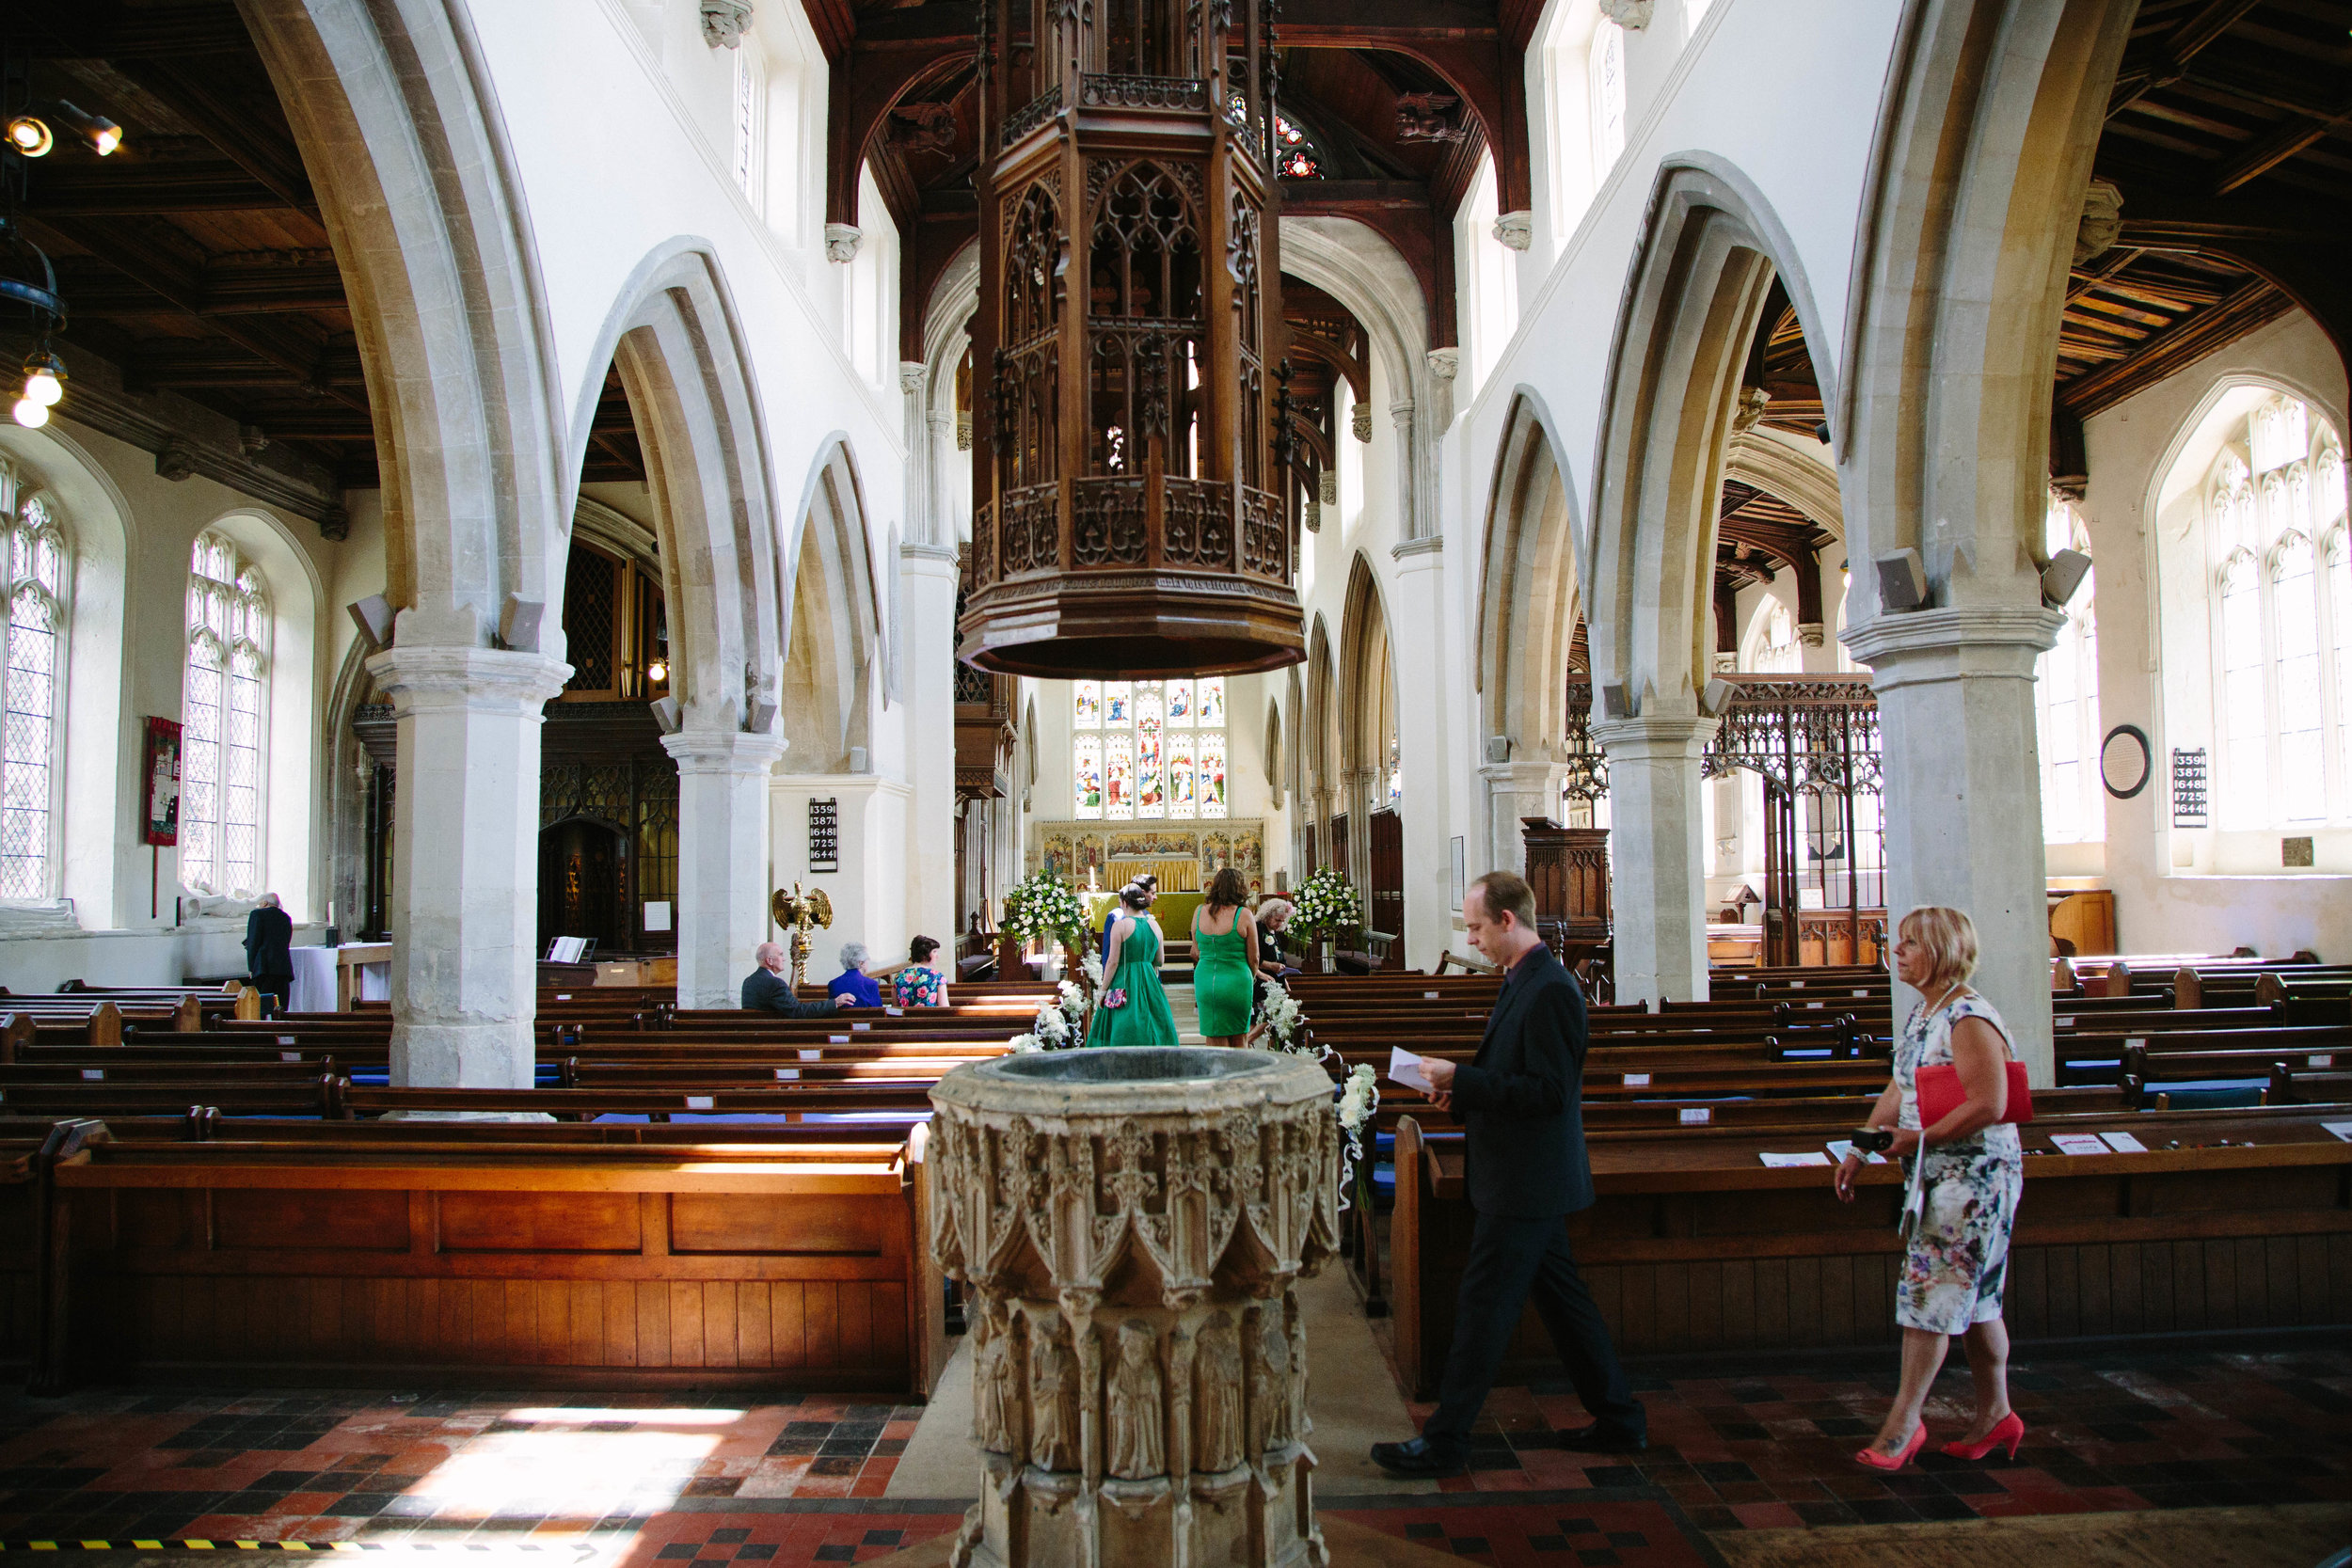 St-Mary's-church-Hitchin-herfordshire-wedding-32